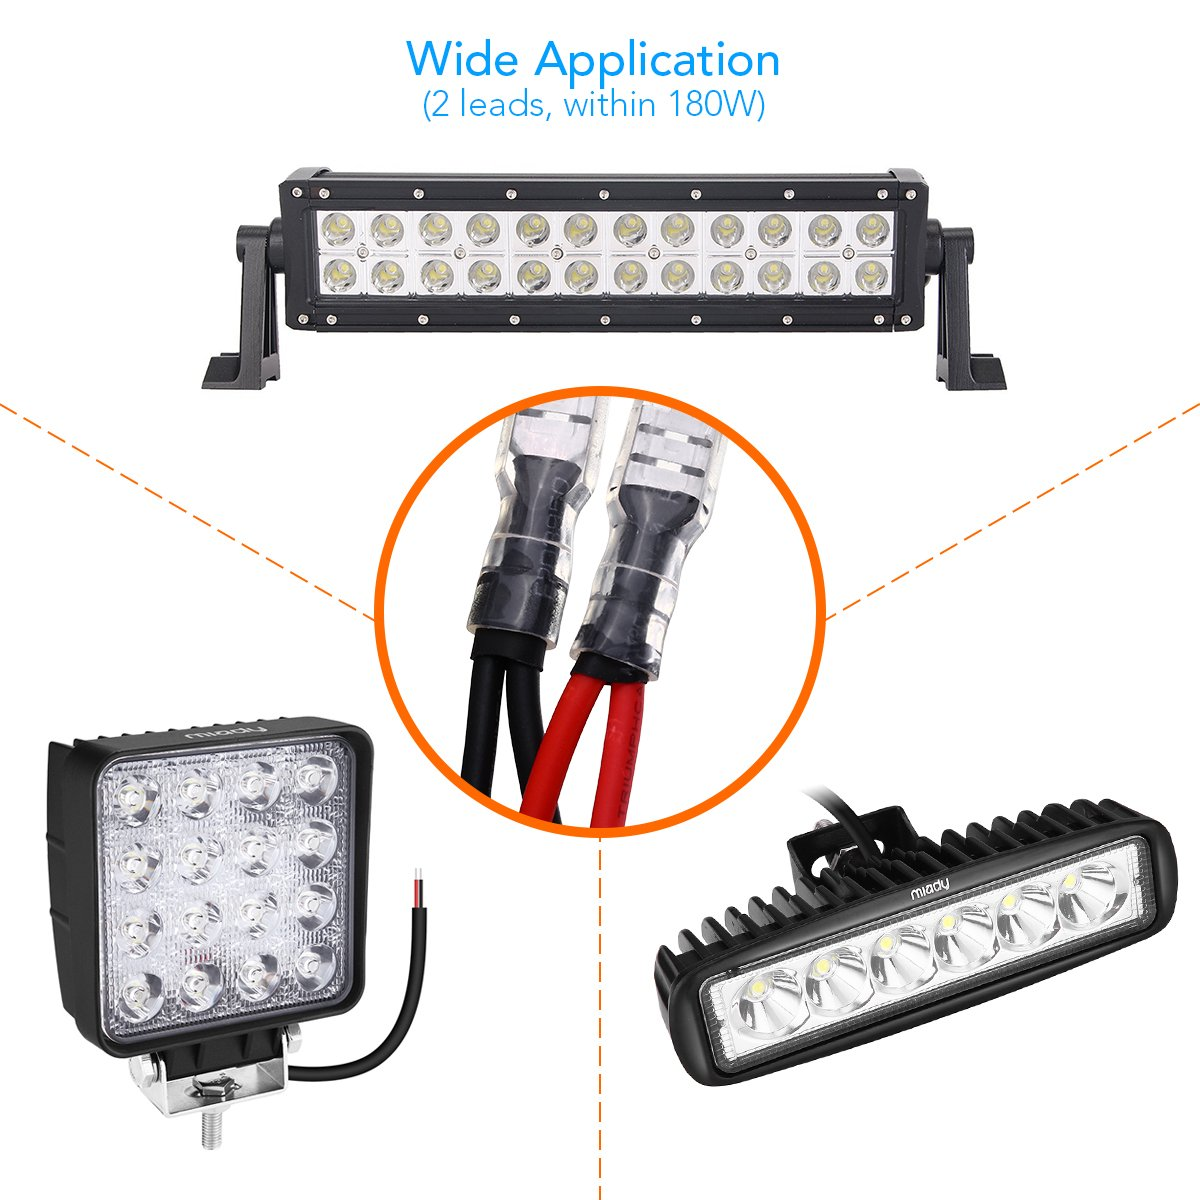 Miady Led Light Bar Wiring Harness Kit With Button Switch 12v 40a Lights In Boat Relay 3 Fuses For Atv Jeep Driving Fog Up To 180w 14 Feet